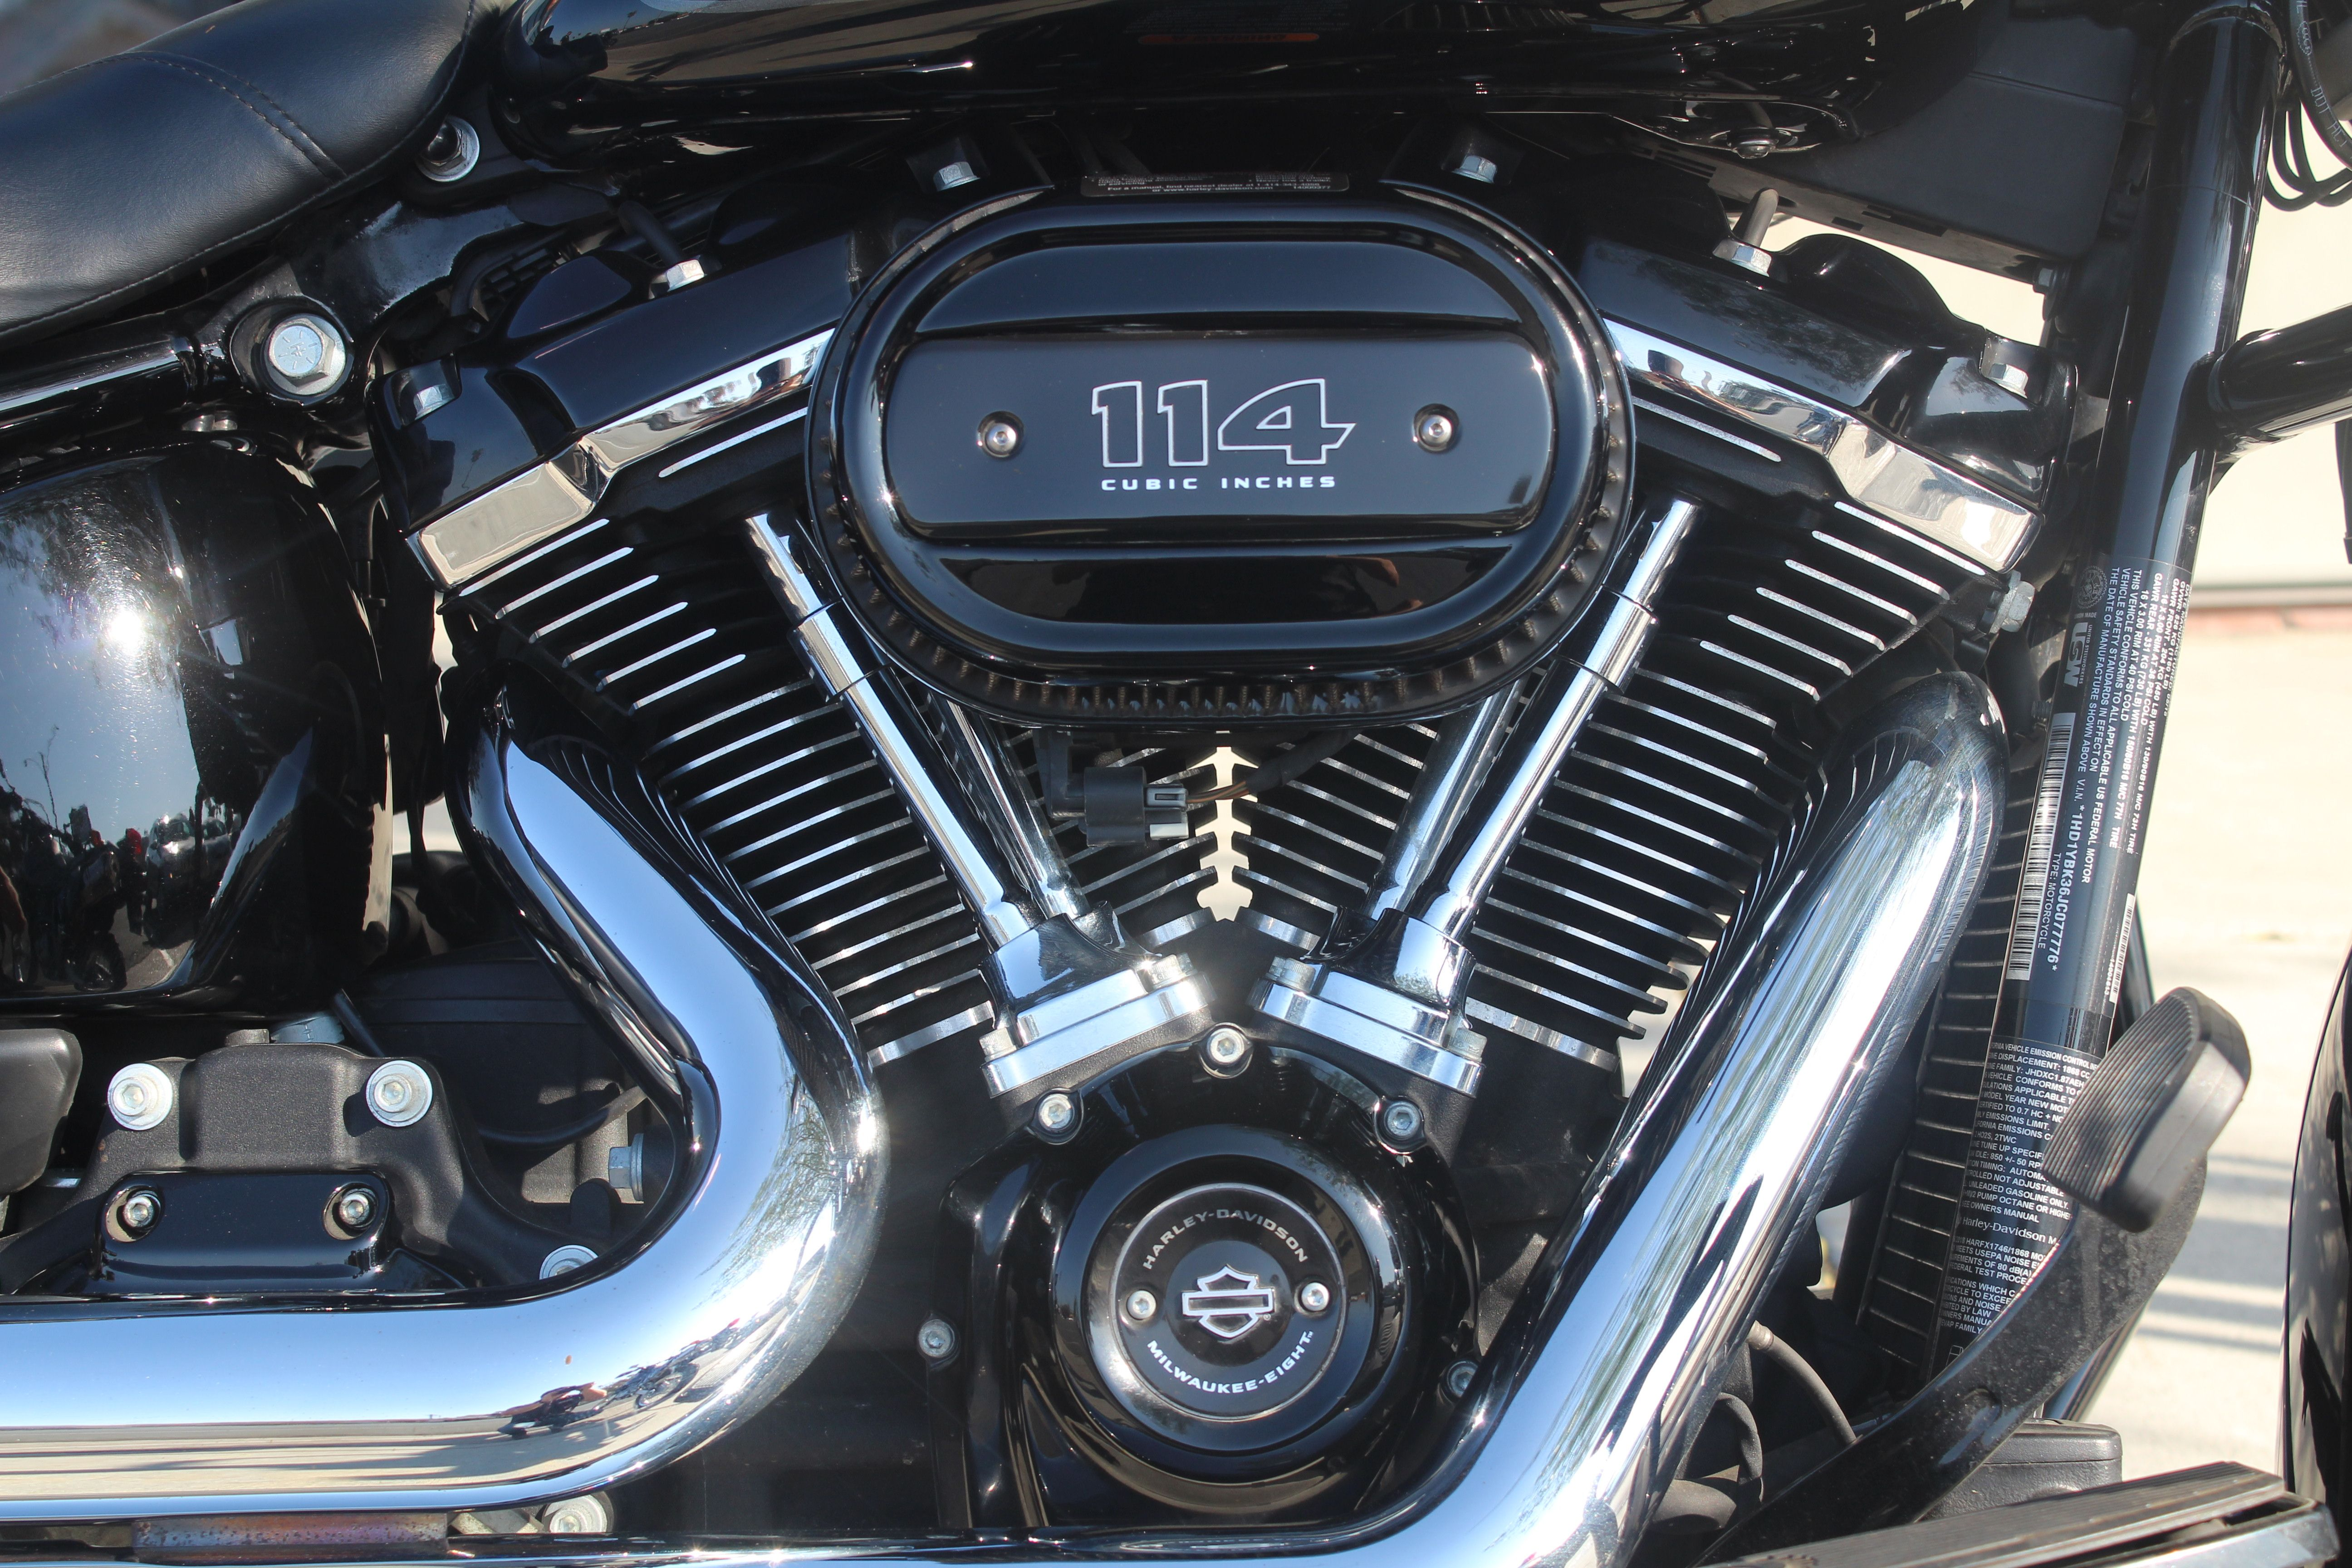 Pre-Owned 2018 Harley-Davidson Heritage Classic 114